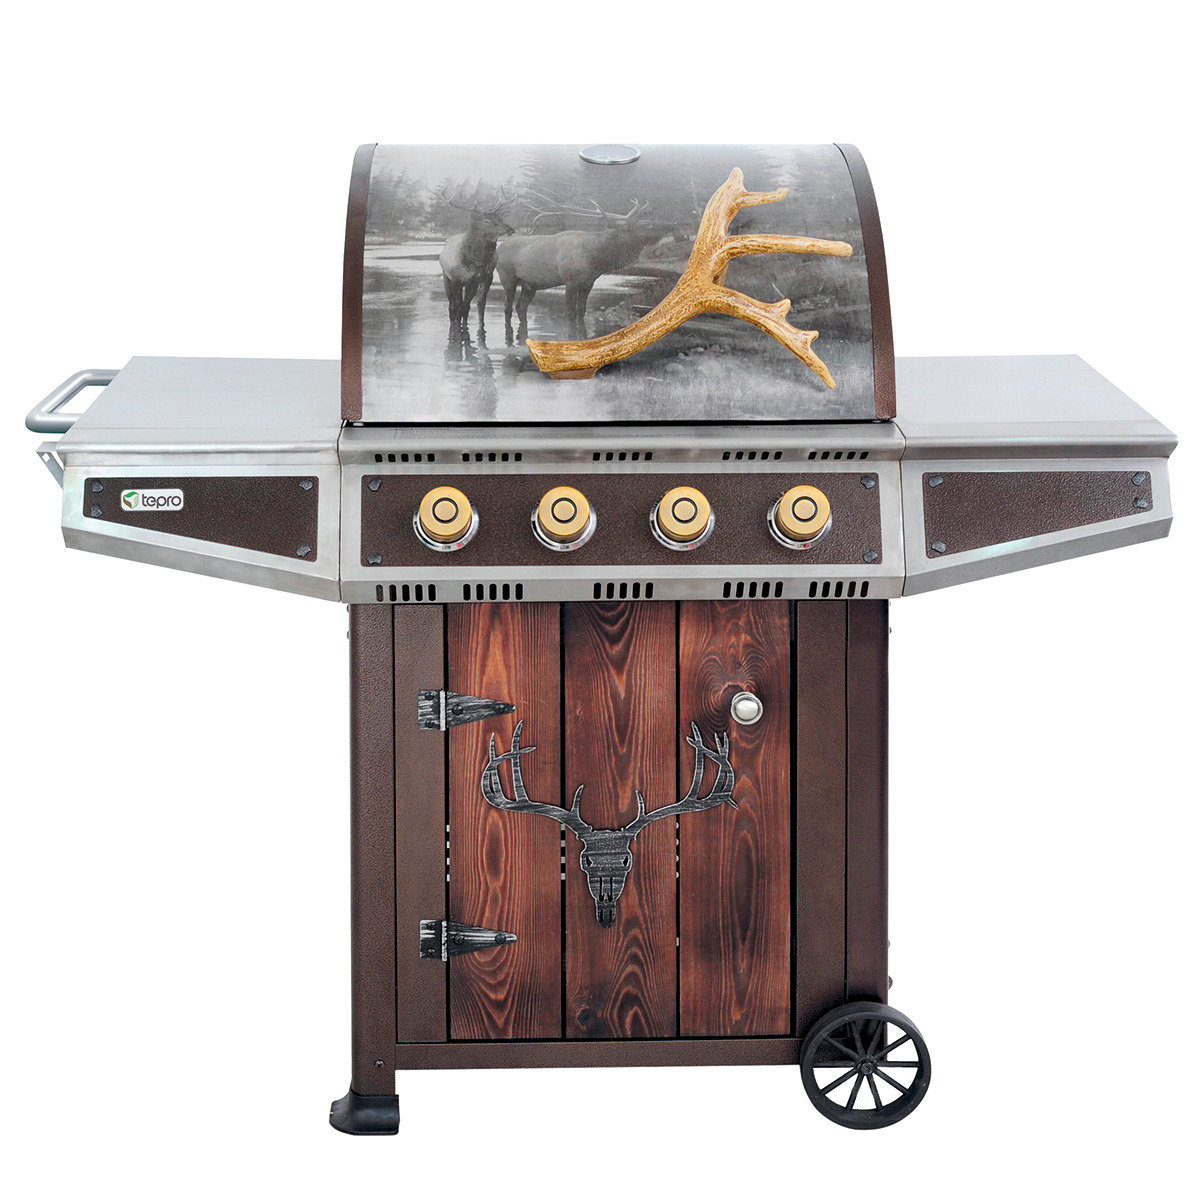 Gasgrill-Wagen Hunter Valley mit Unterschrank